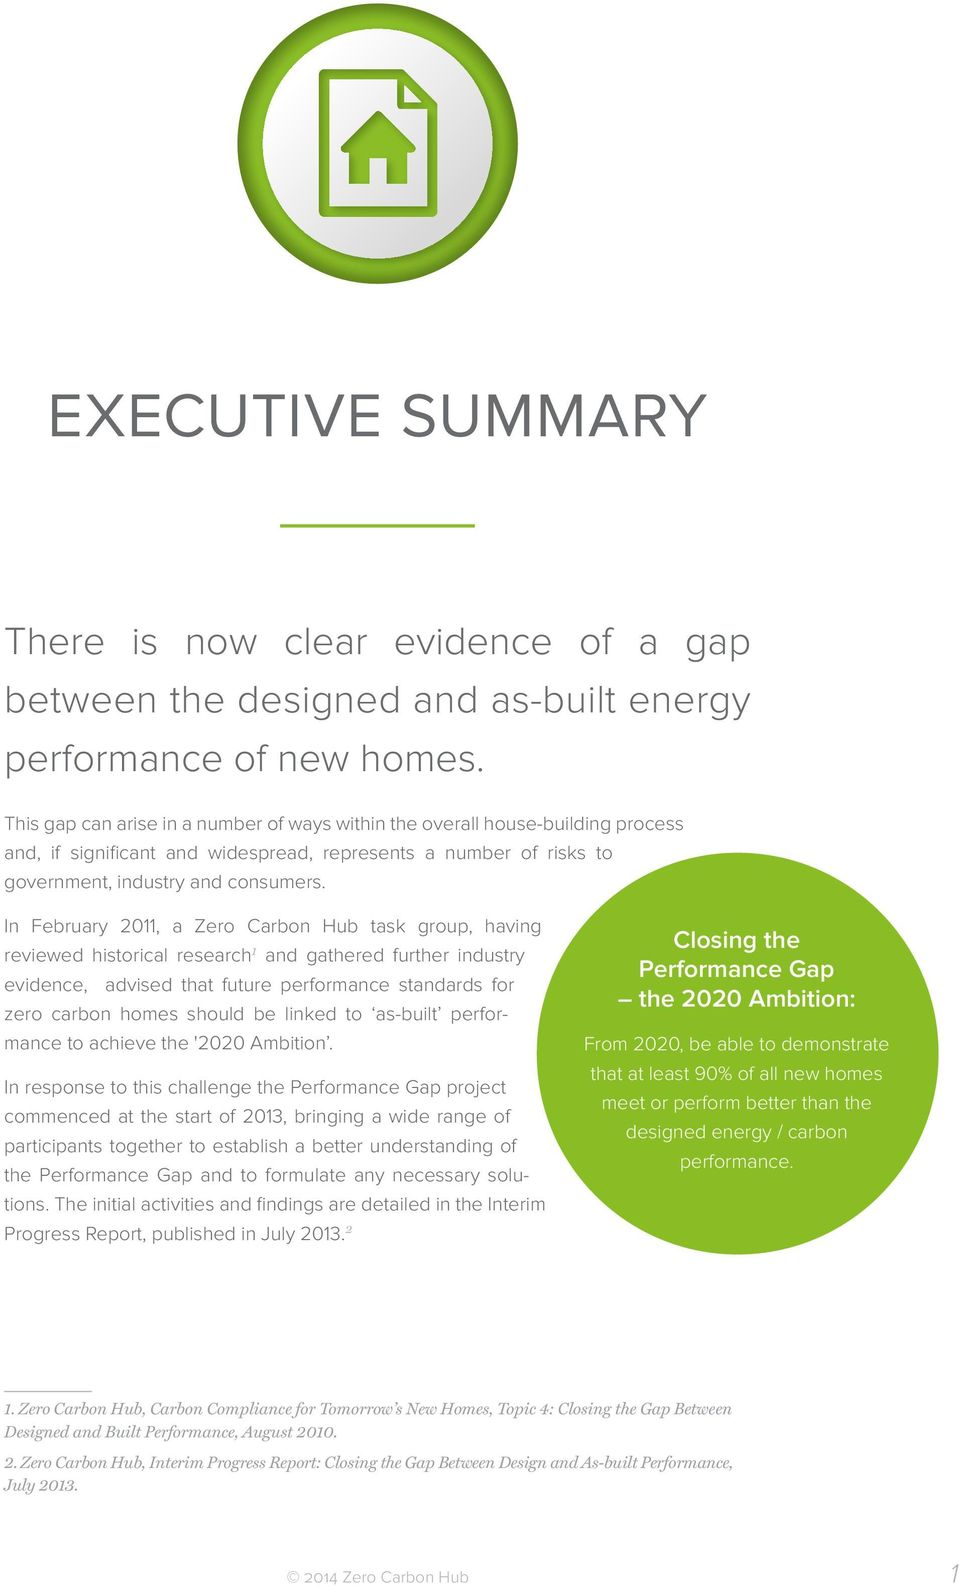 In February 2011, a Zero Carbon Hub task group, having reviewed historical research 1 and gathered further industry evidence, advised that future performance standards for zero carbon homes should be